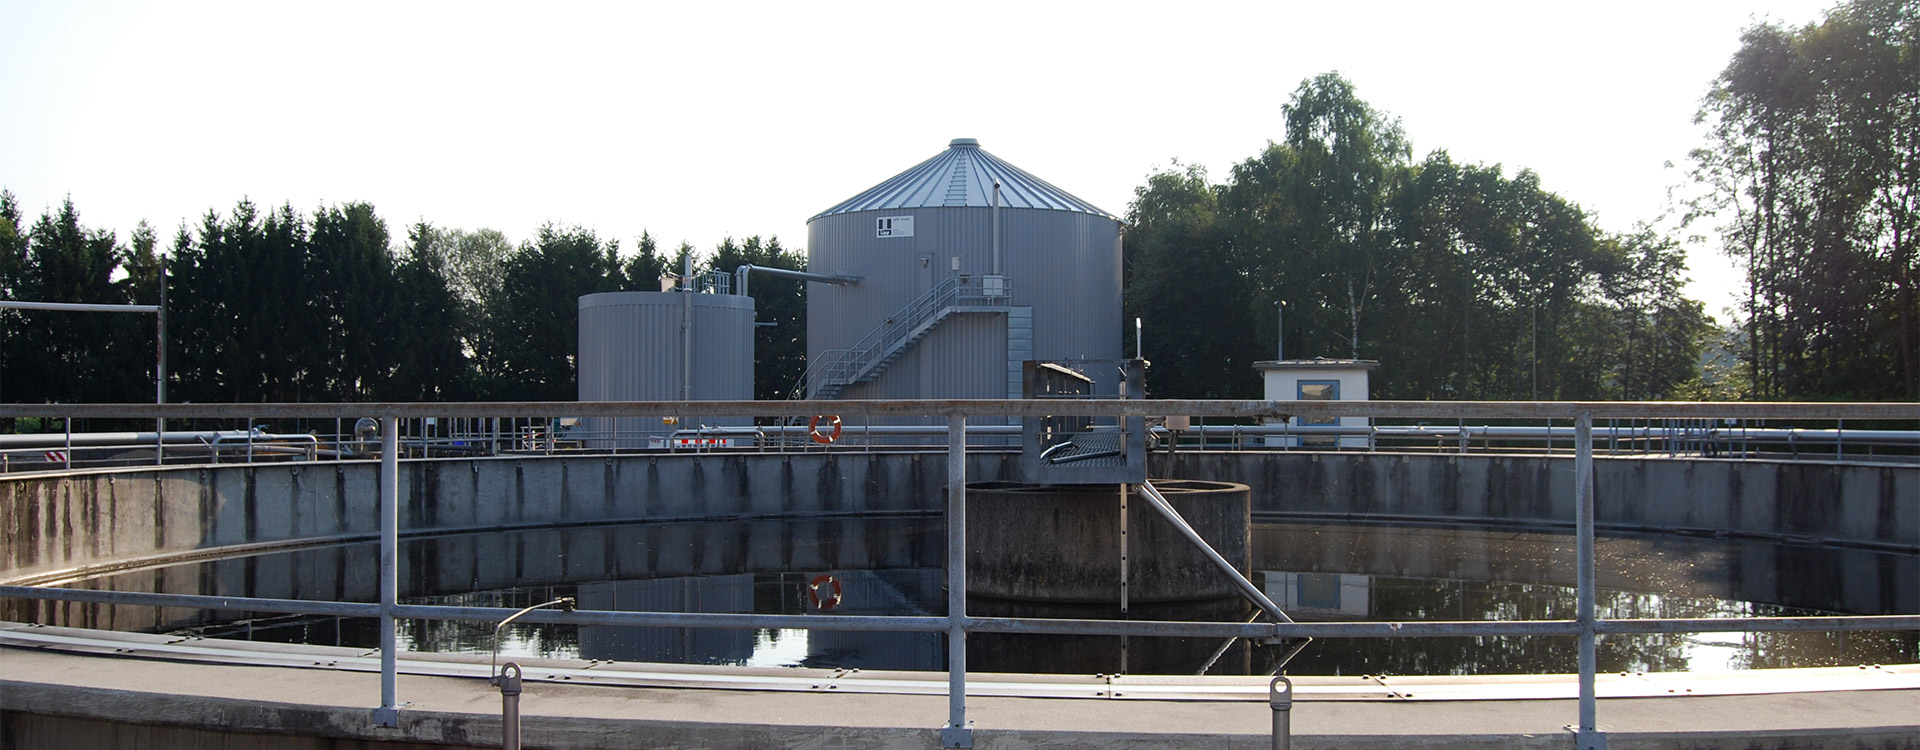 Industry Wastewater Digester